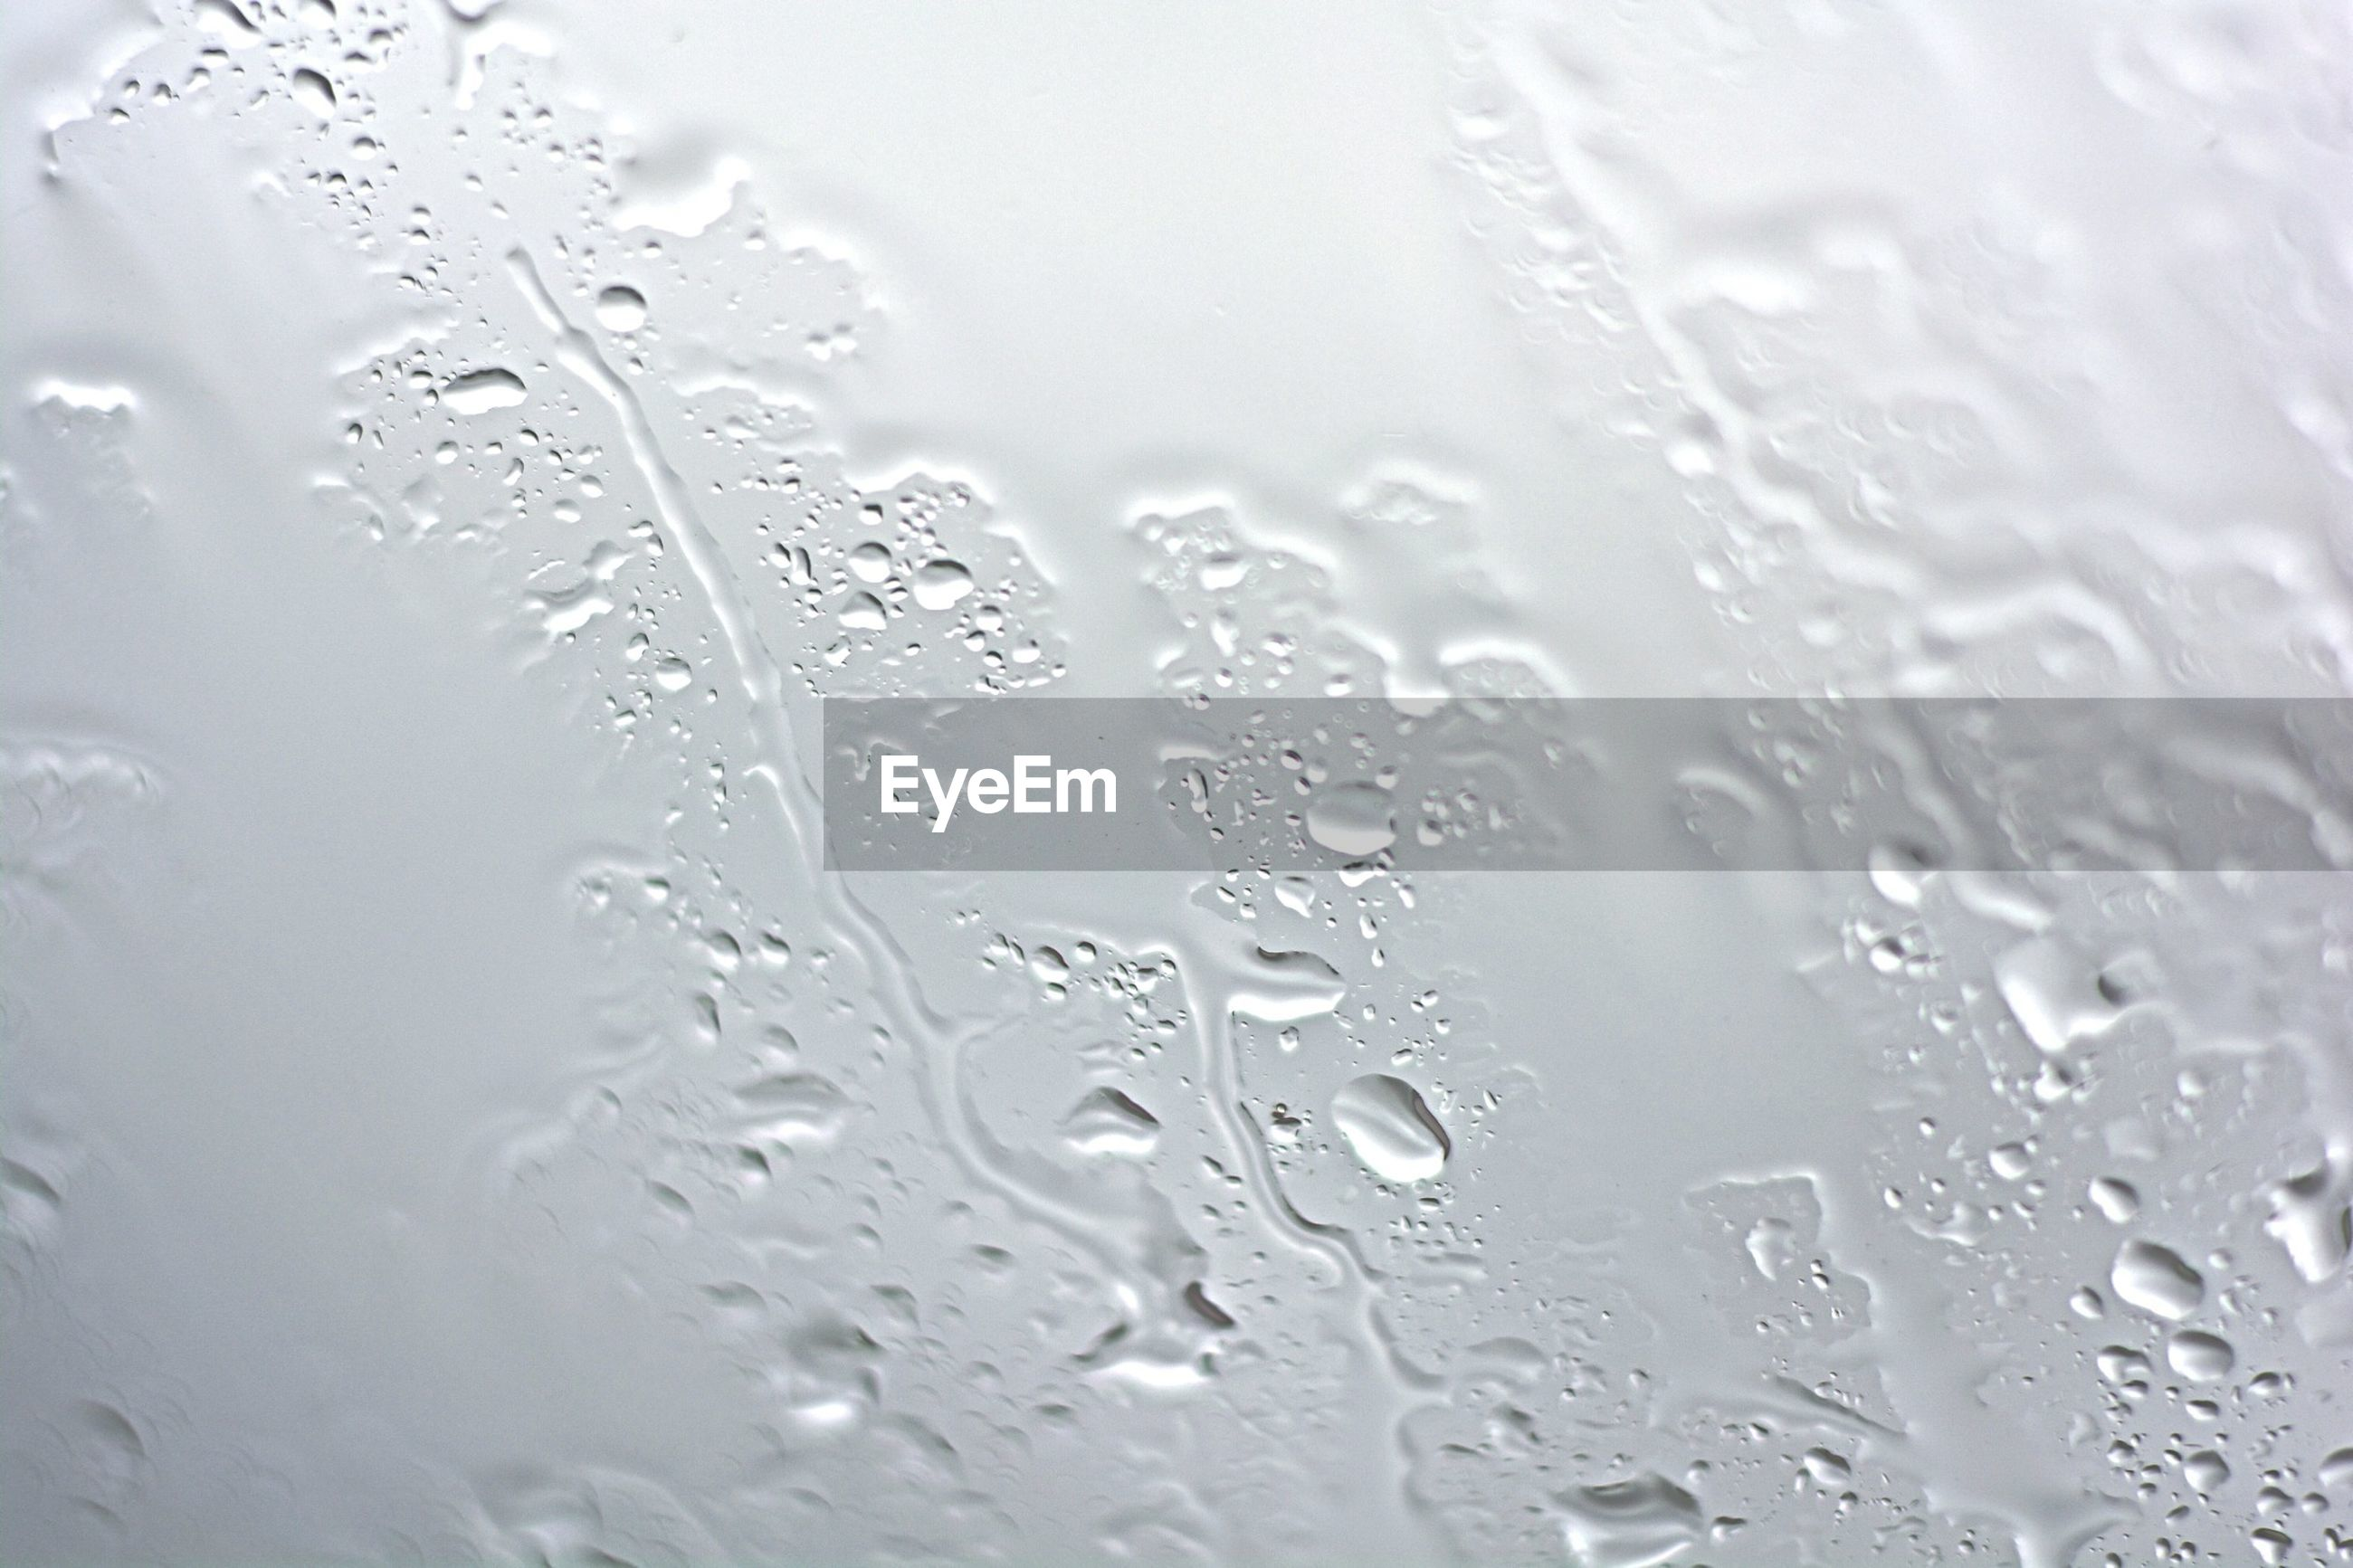 EXTREME CLOSE UP OF WATER DROPS ON WOODEN SURFACE